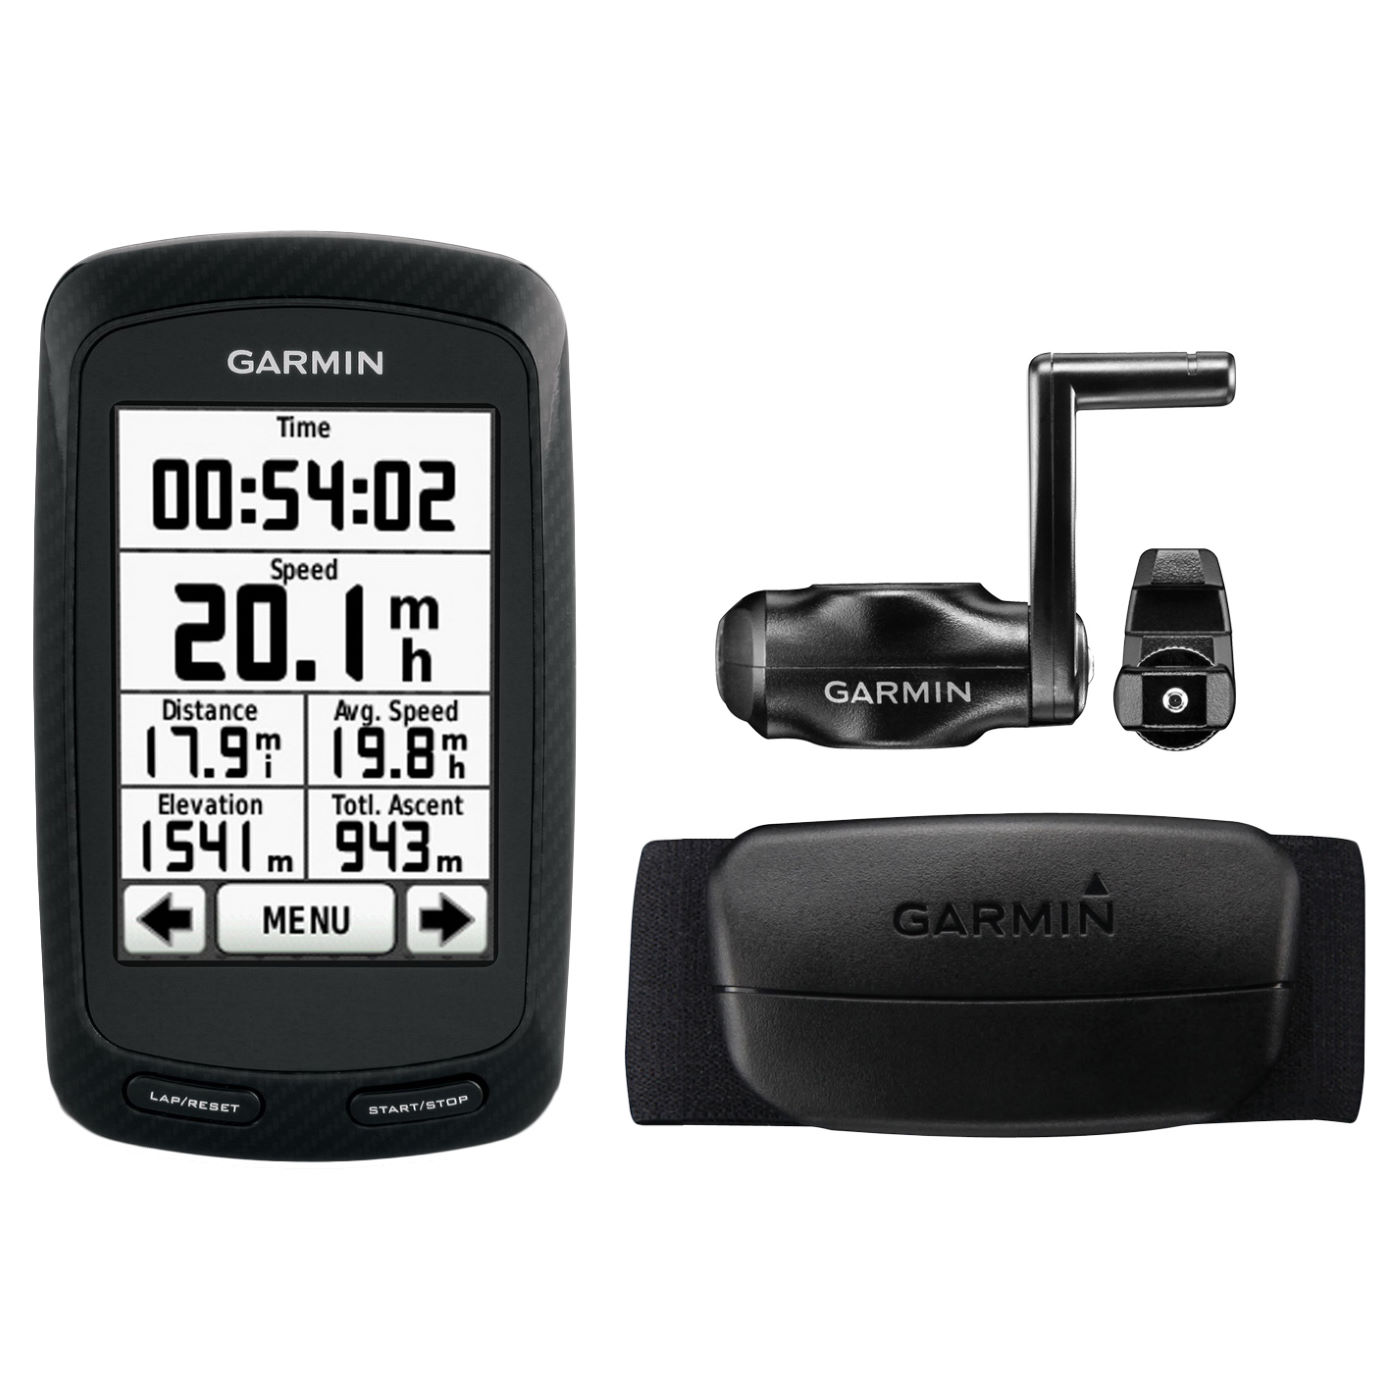 Garmin Cycle Computer >> Wiggle | Garmin NOH Edge 800 GPS Performance Bundle | GPS ...